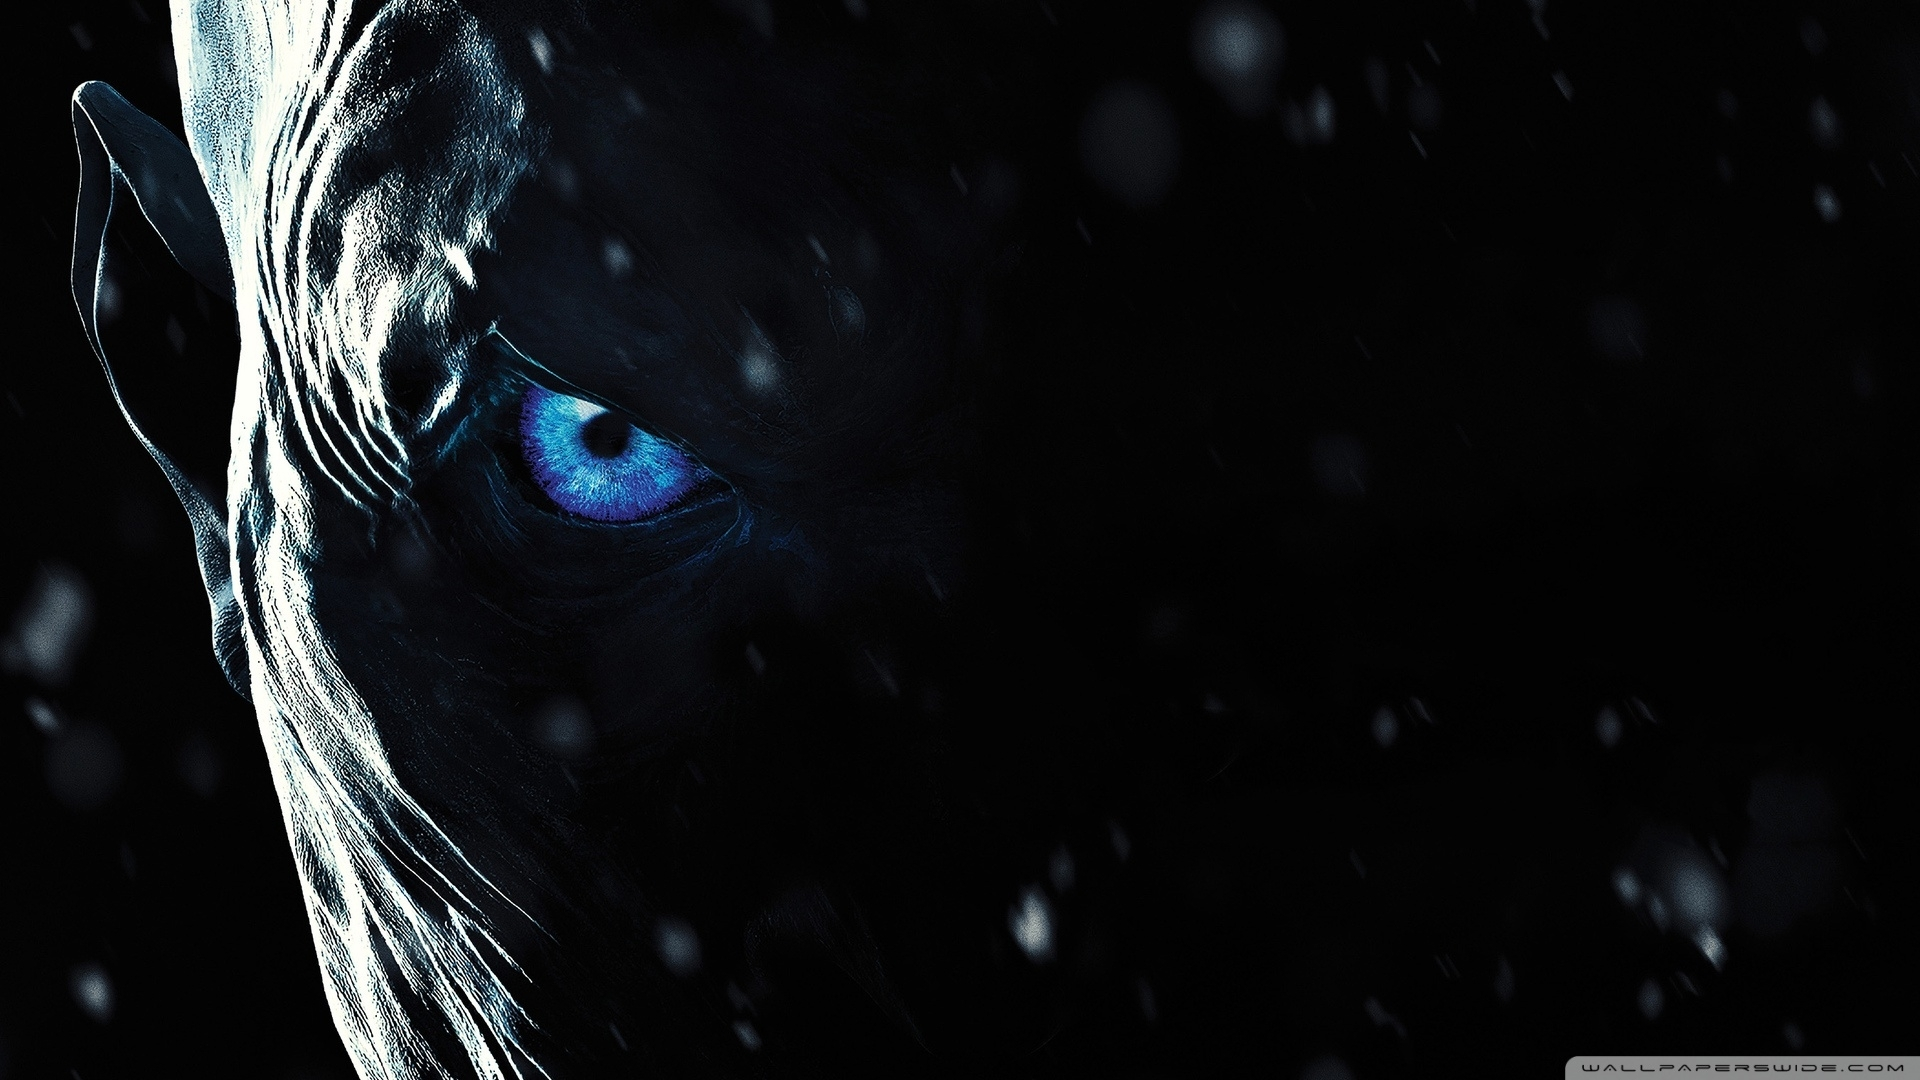 game of thrones season 7 white walkers ❤ 4k hd desktop wallpaper